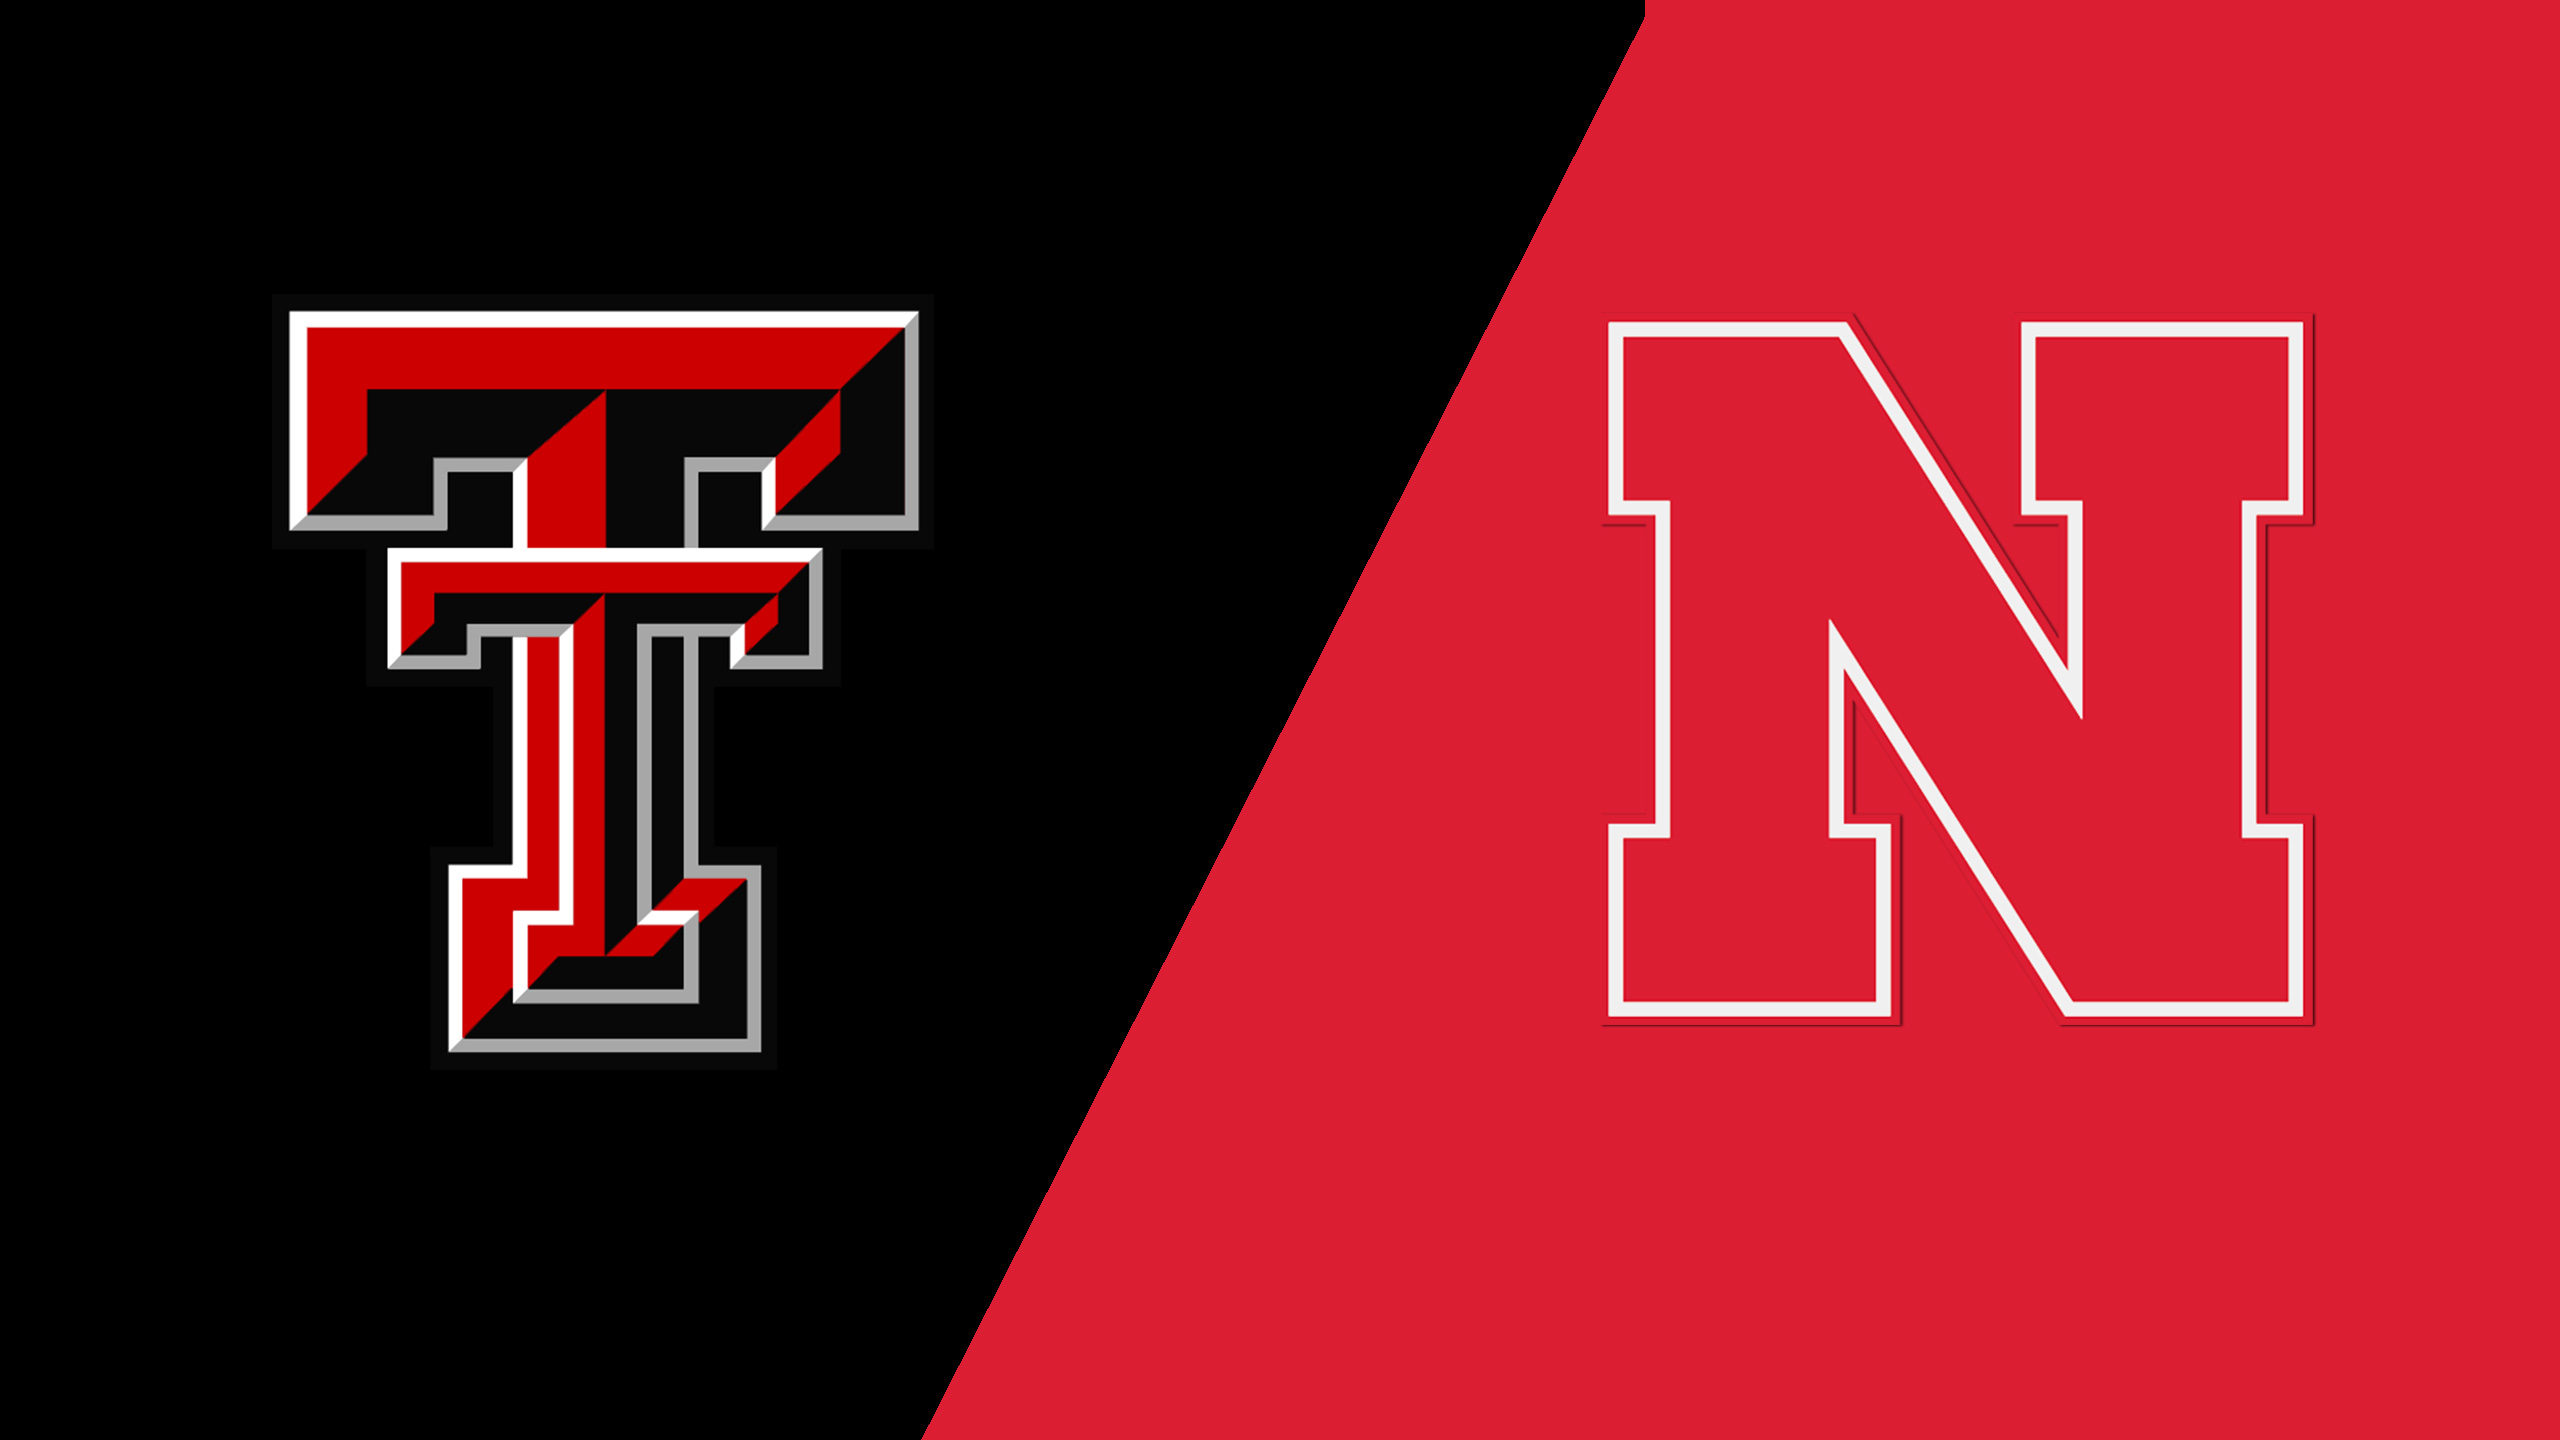 In Spanish - Texas Tech vs. Nebraska (Championship) (Hall of Fame Classic)